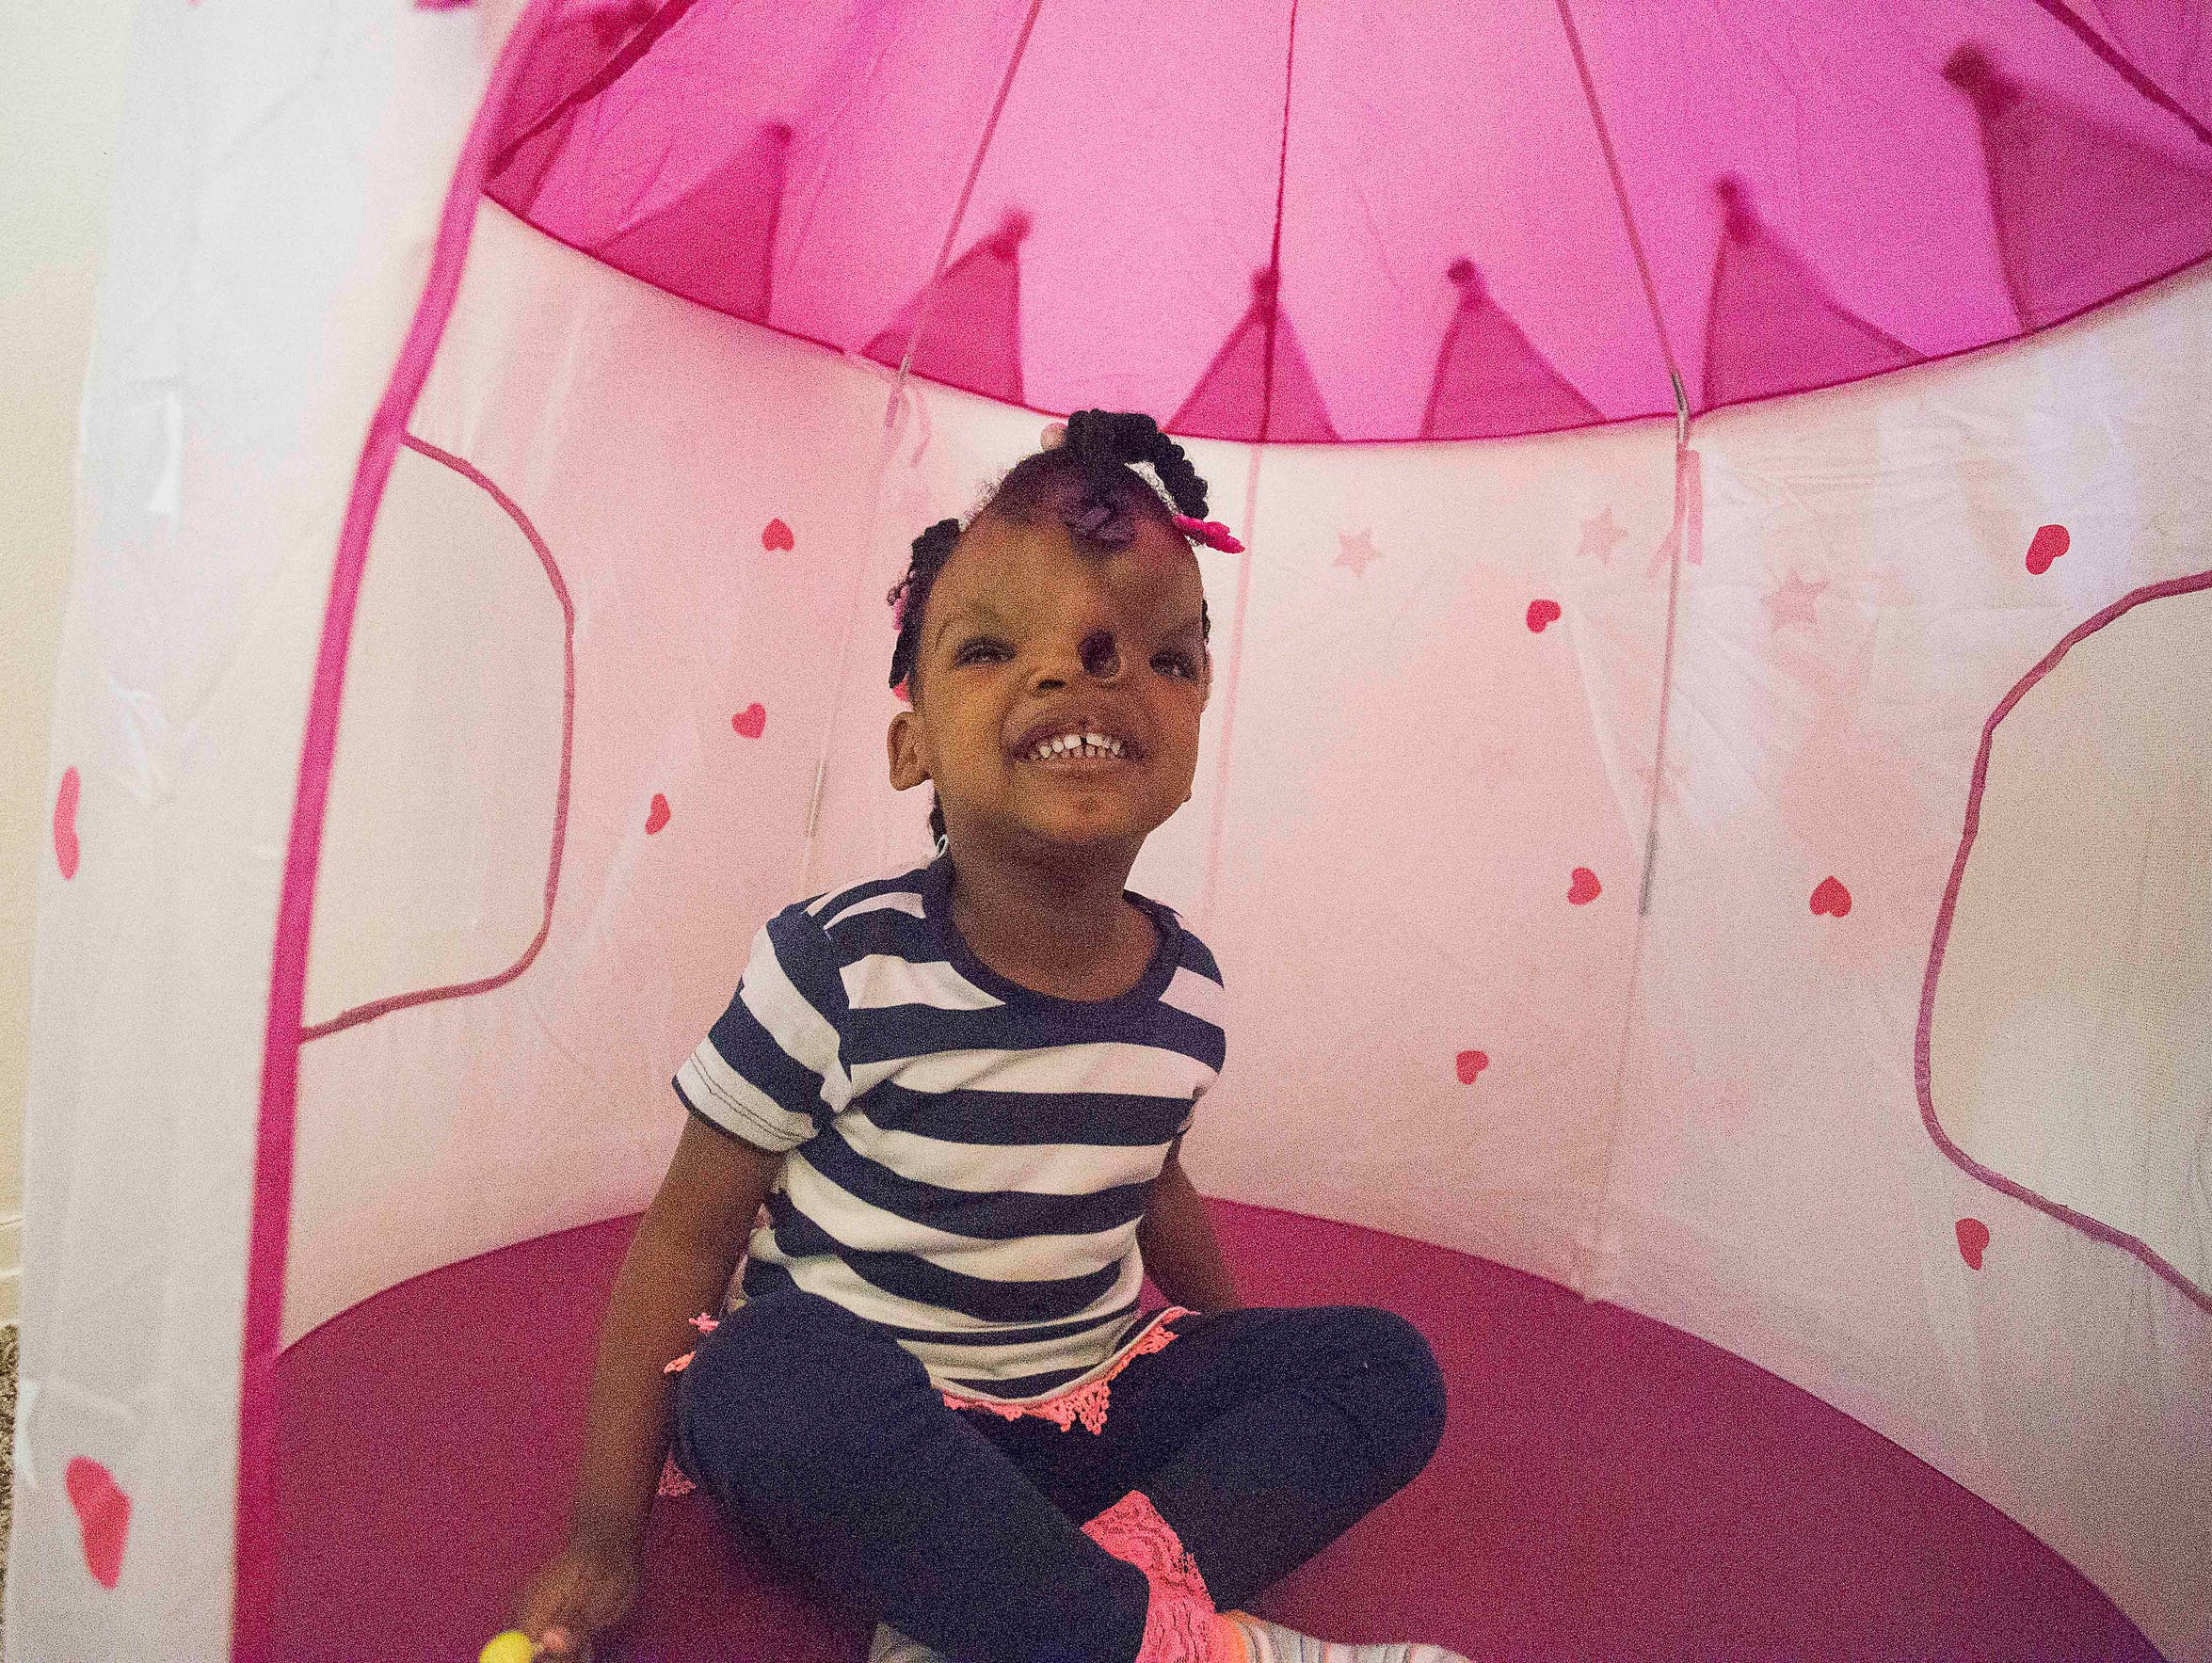 Zoey Grace Alford gives a big smile while playing in her pink castle.